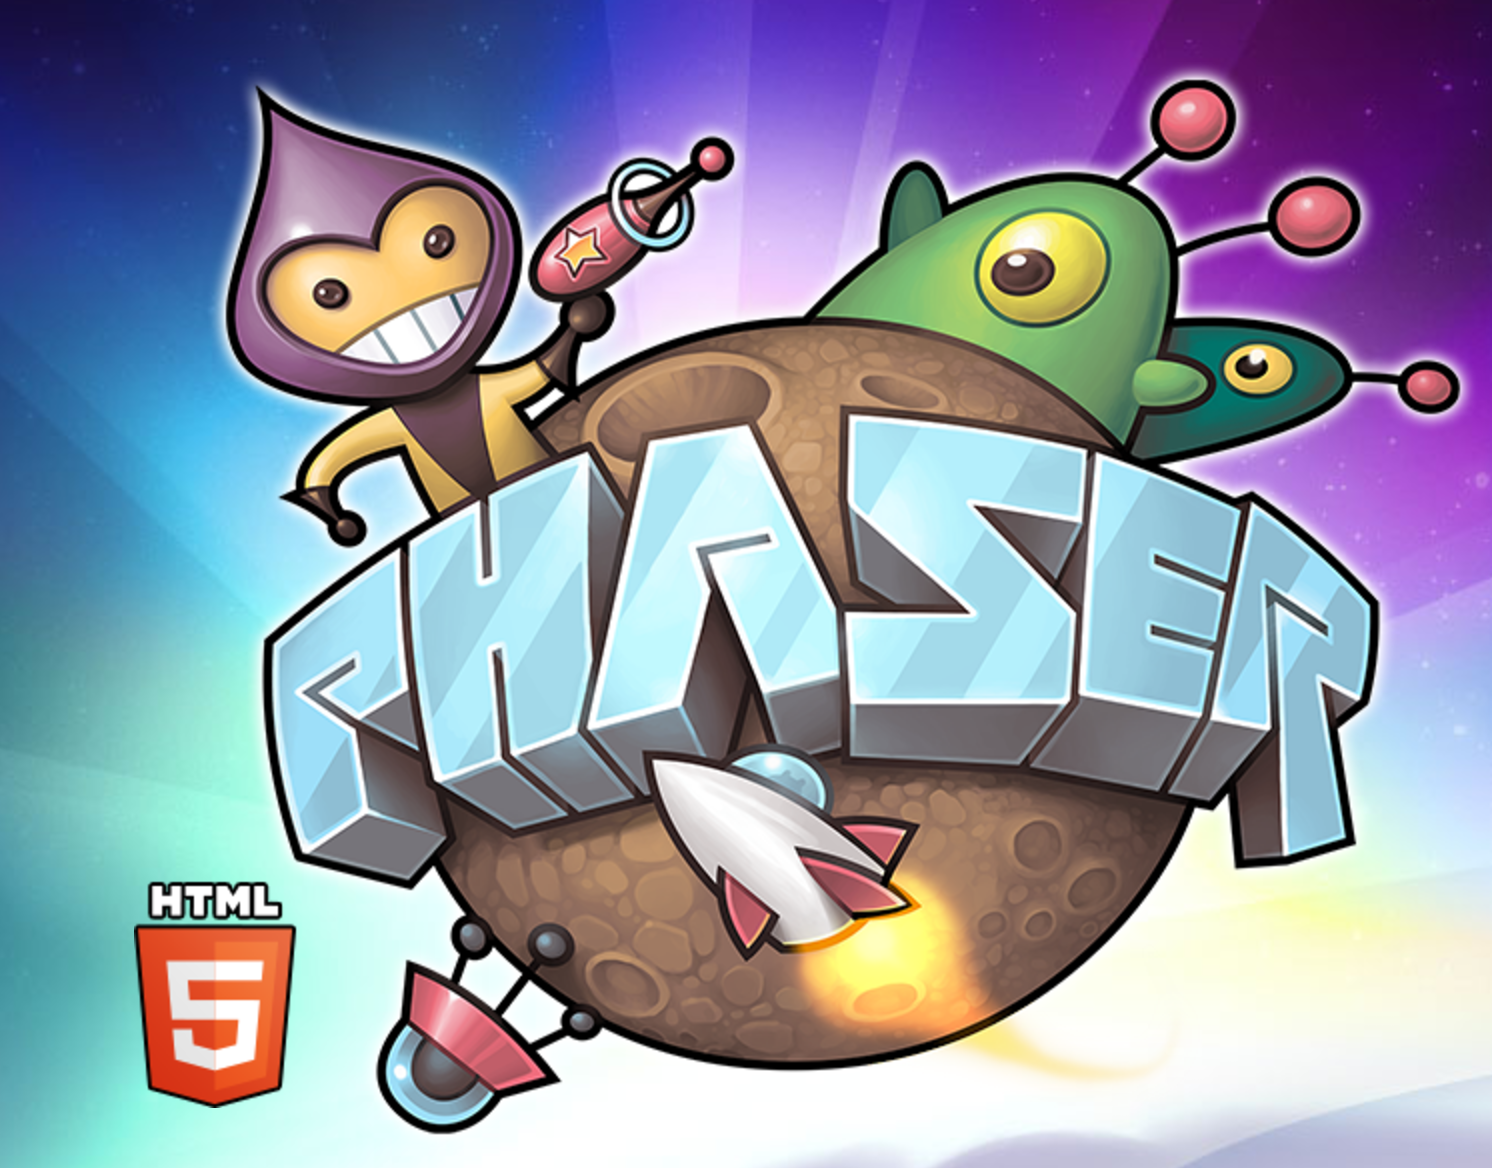 Phaser Game development, Game logo, Game engine